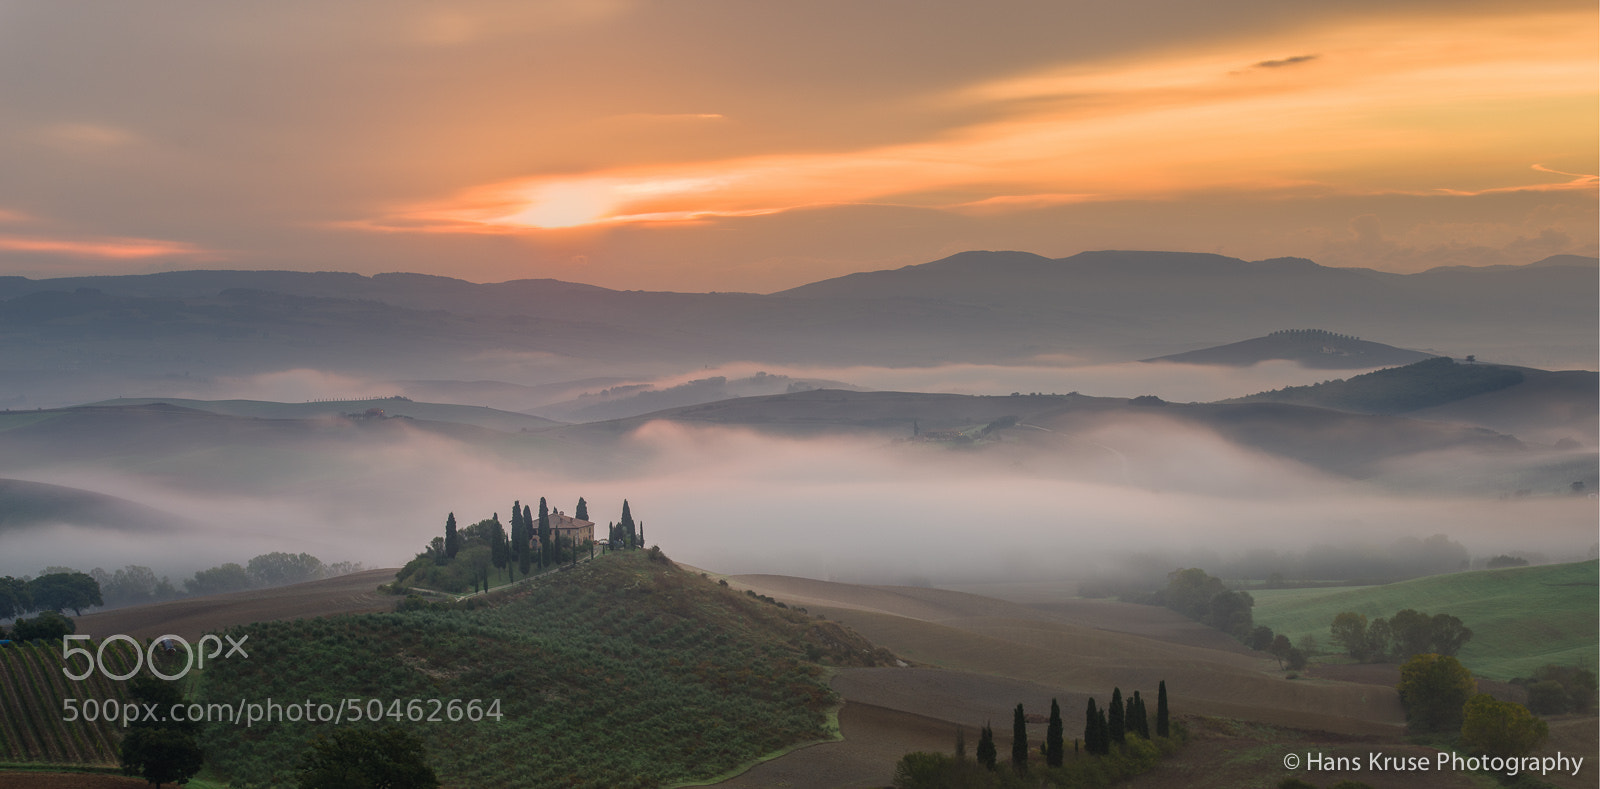 Photograph Tuscan morning dream by Hans Kruse on 500px